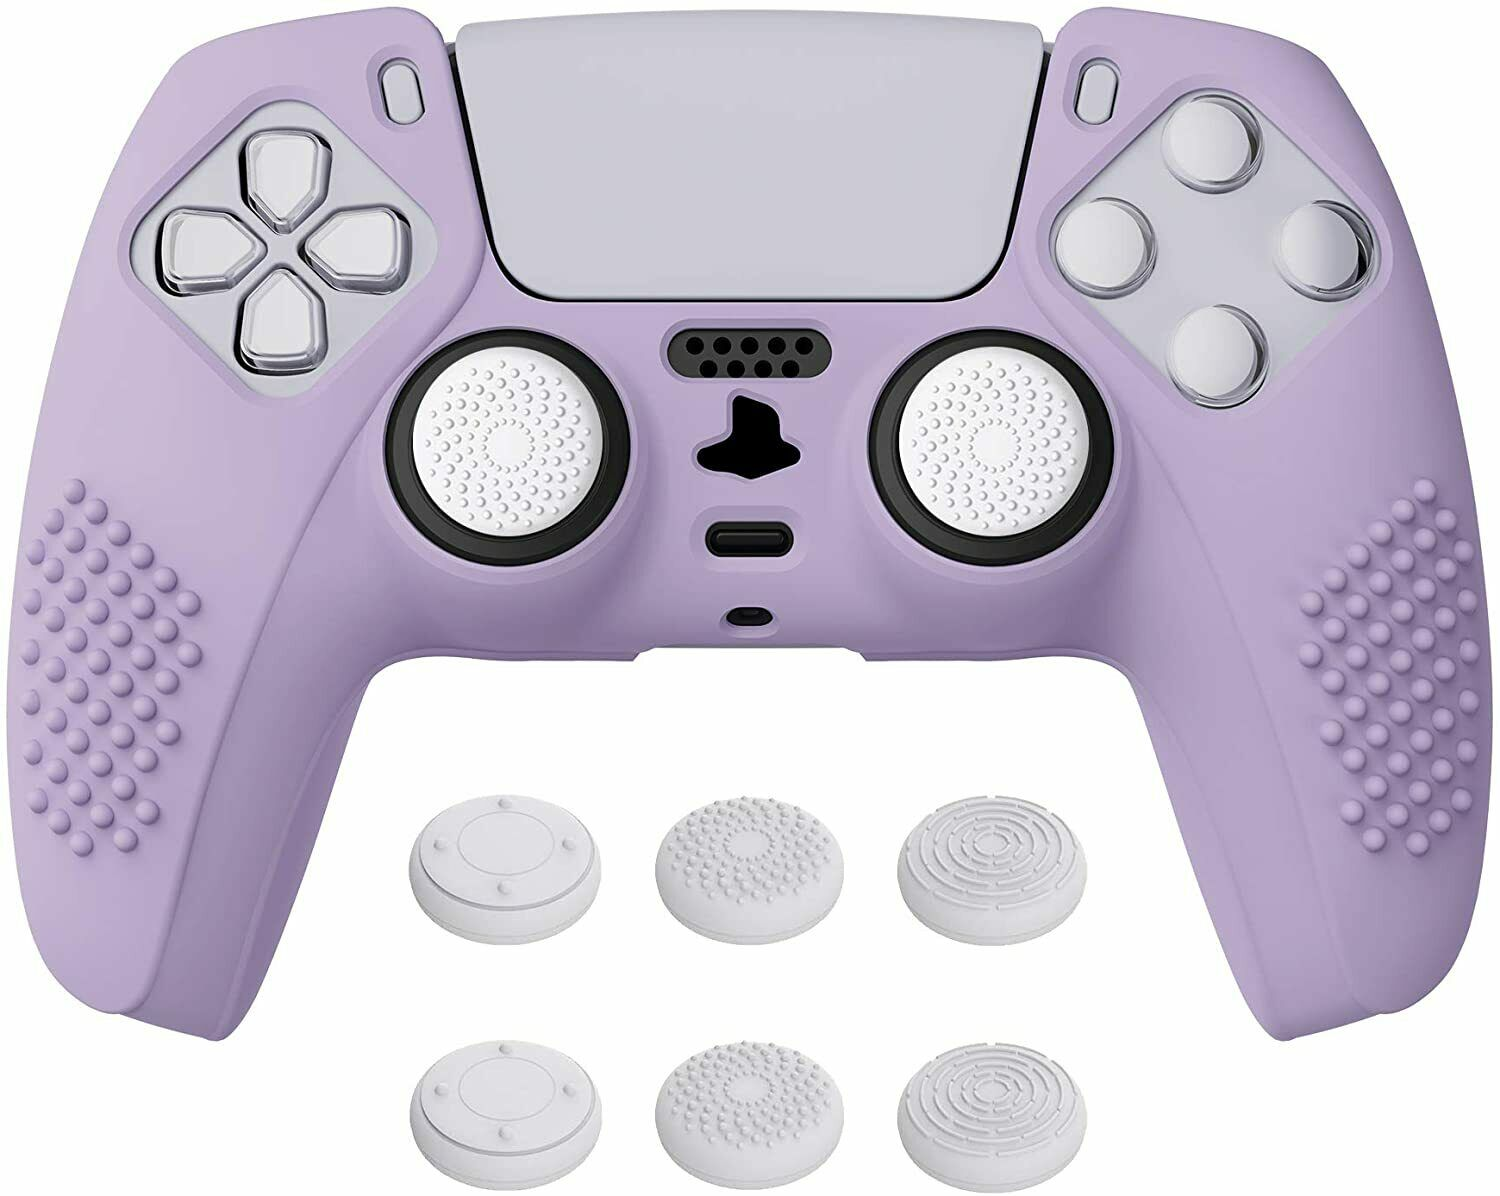 Silicone Cover Skin for PS5 Controller with 6 White Thumb Grip Caps